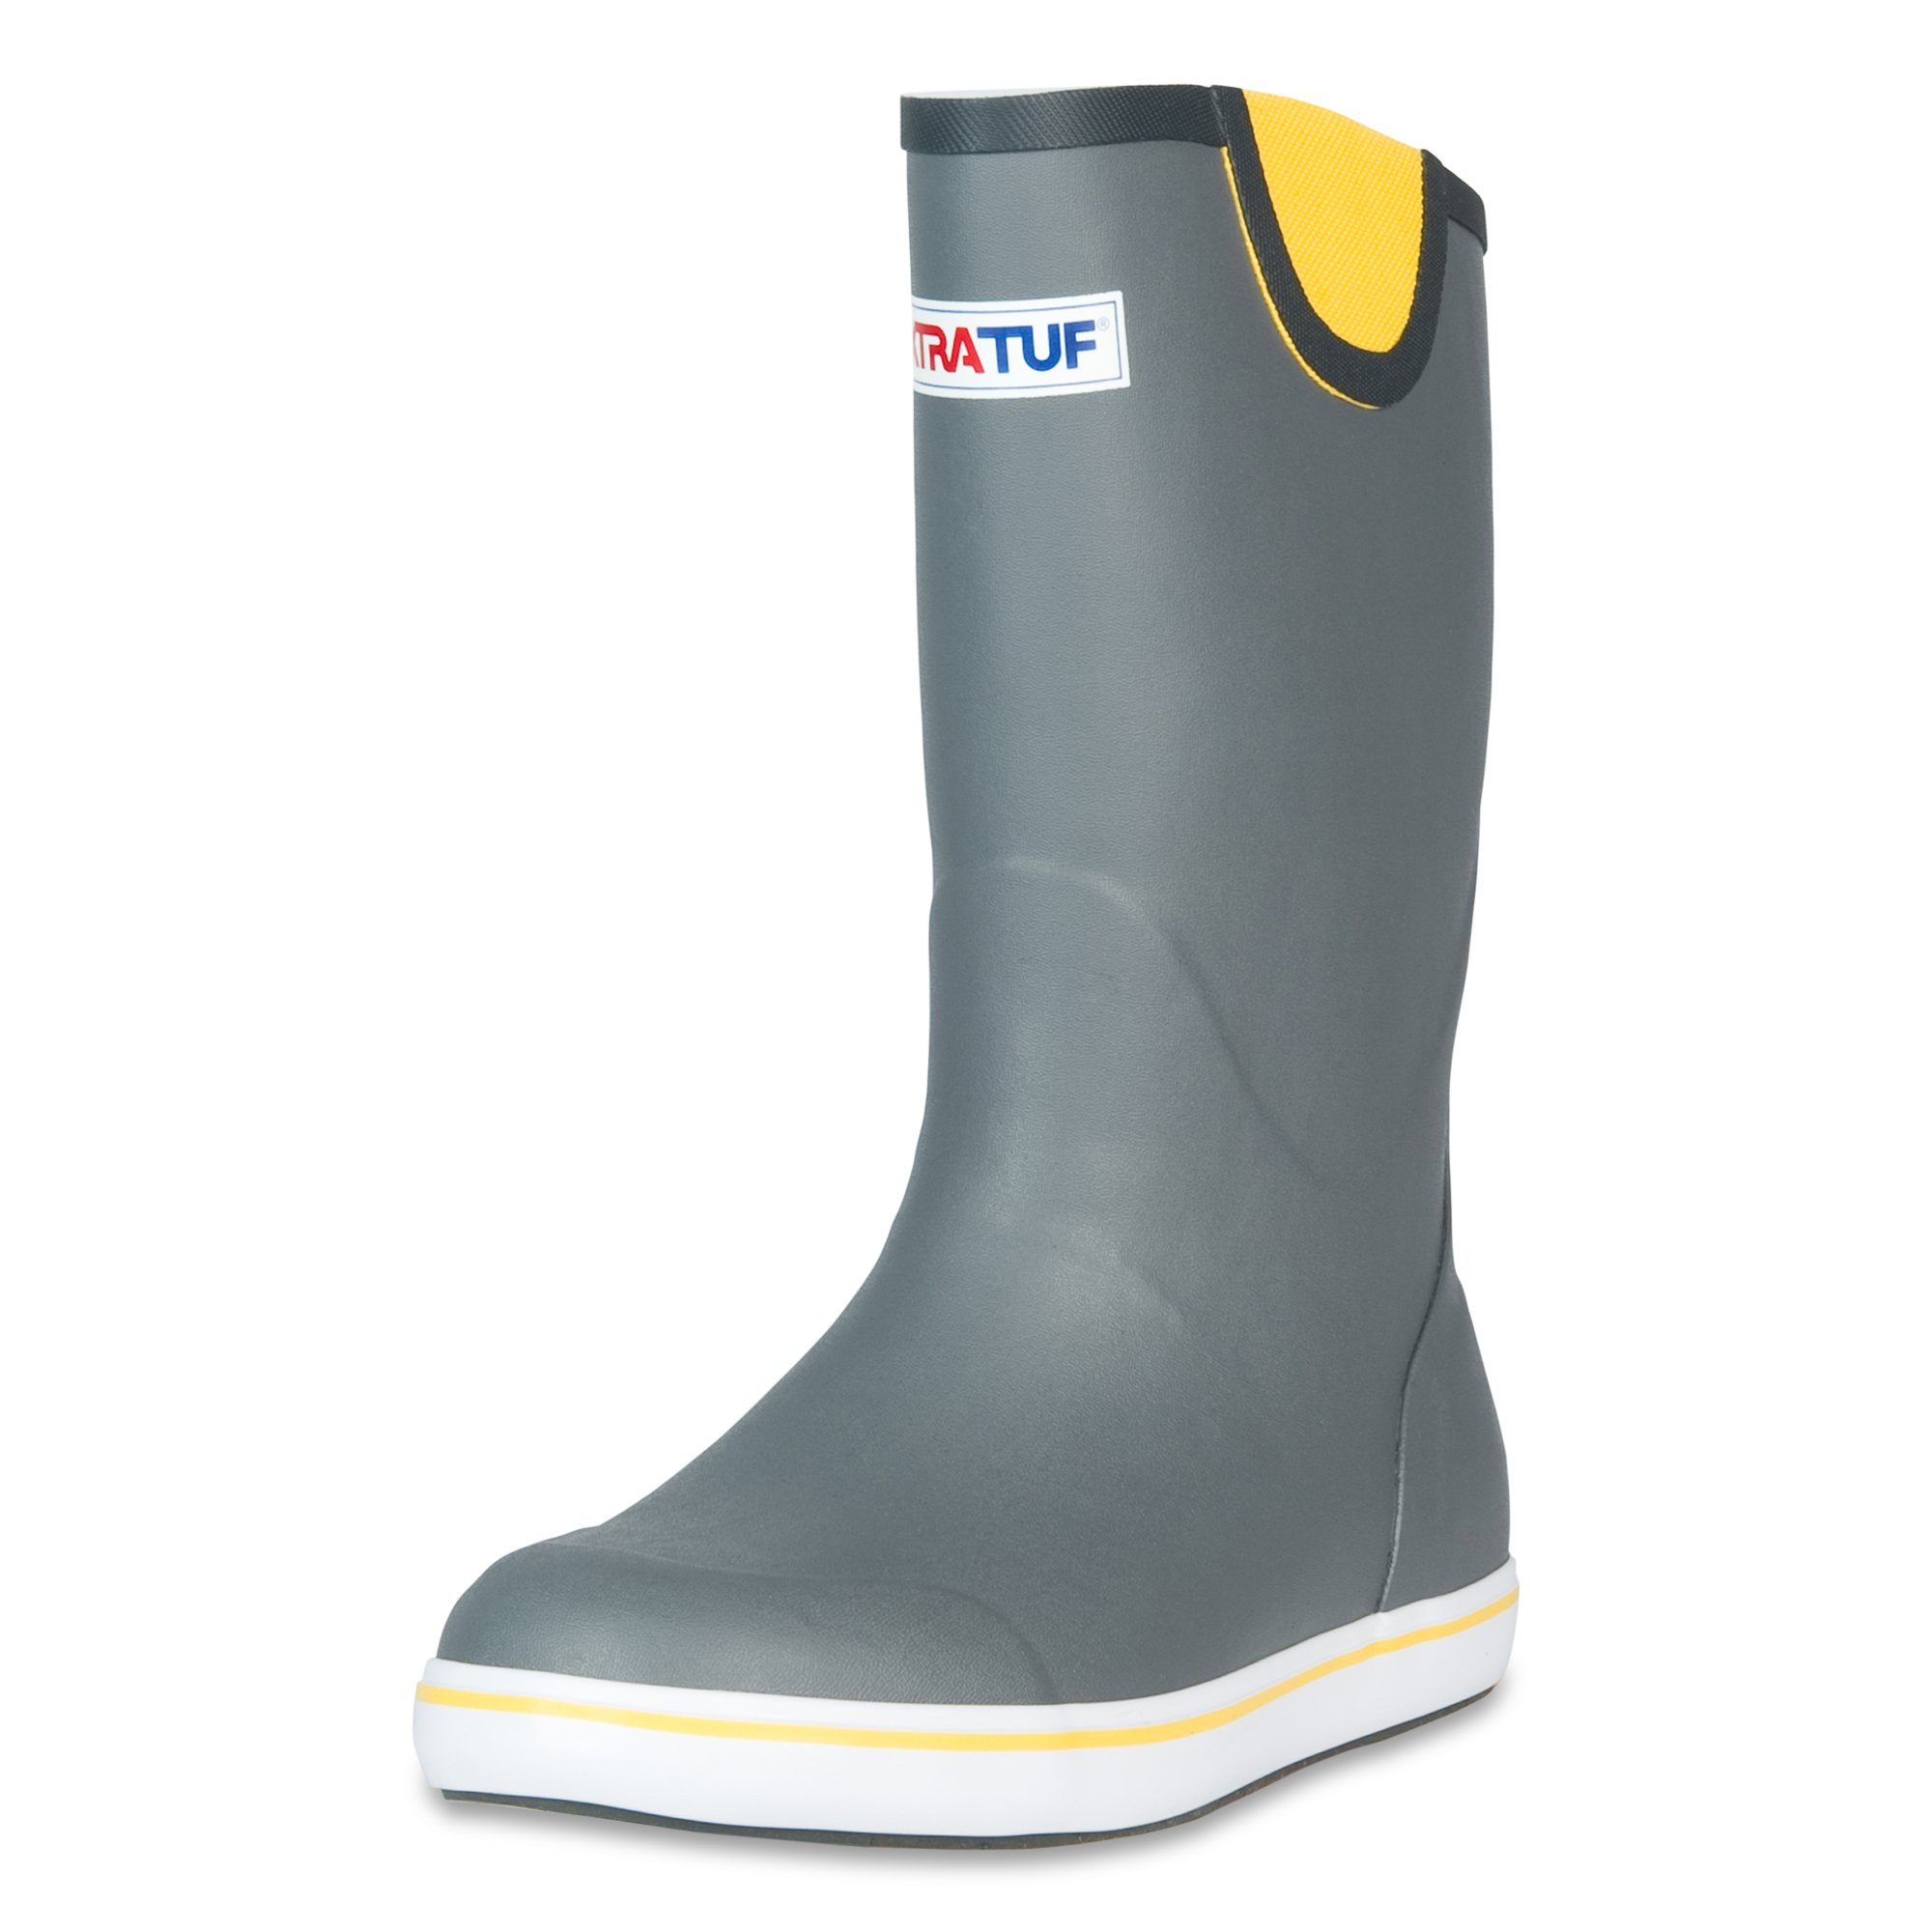 XTRATUF Performance Series 12'' Men's Full Rubber Deck Boots, Gray & Yellow (22712) by Xtratuf